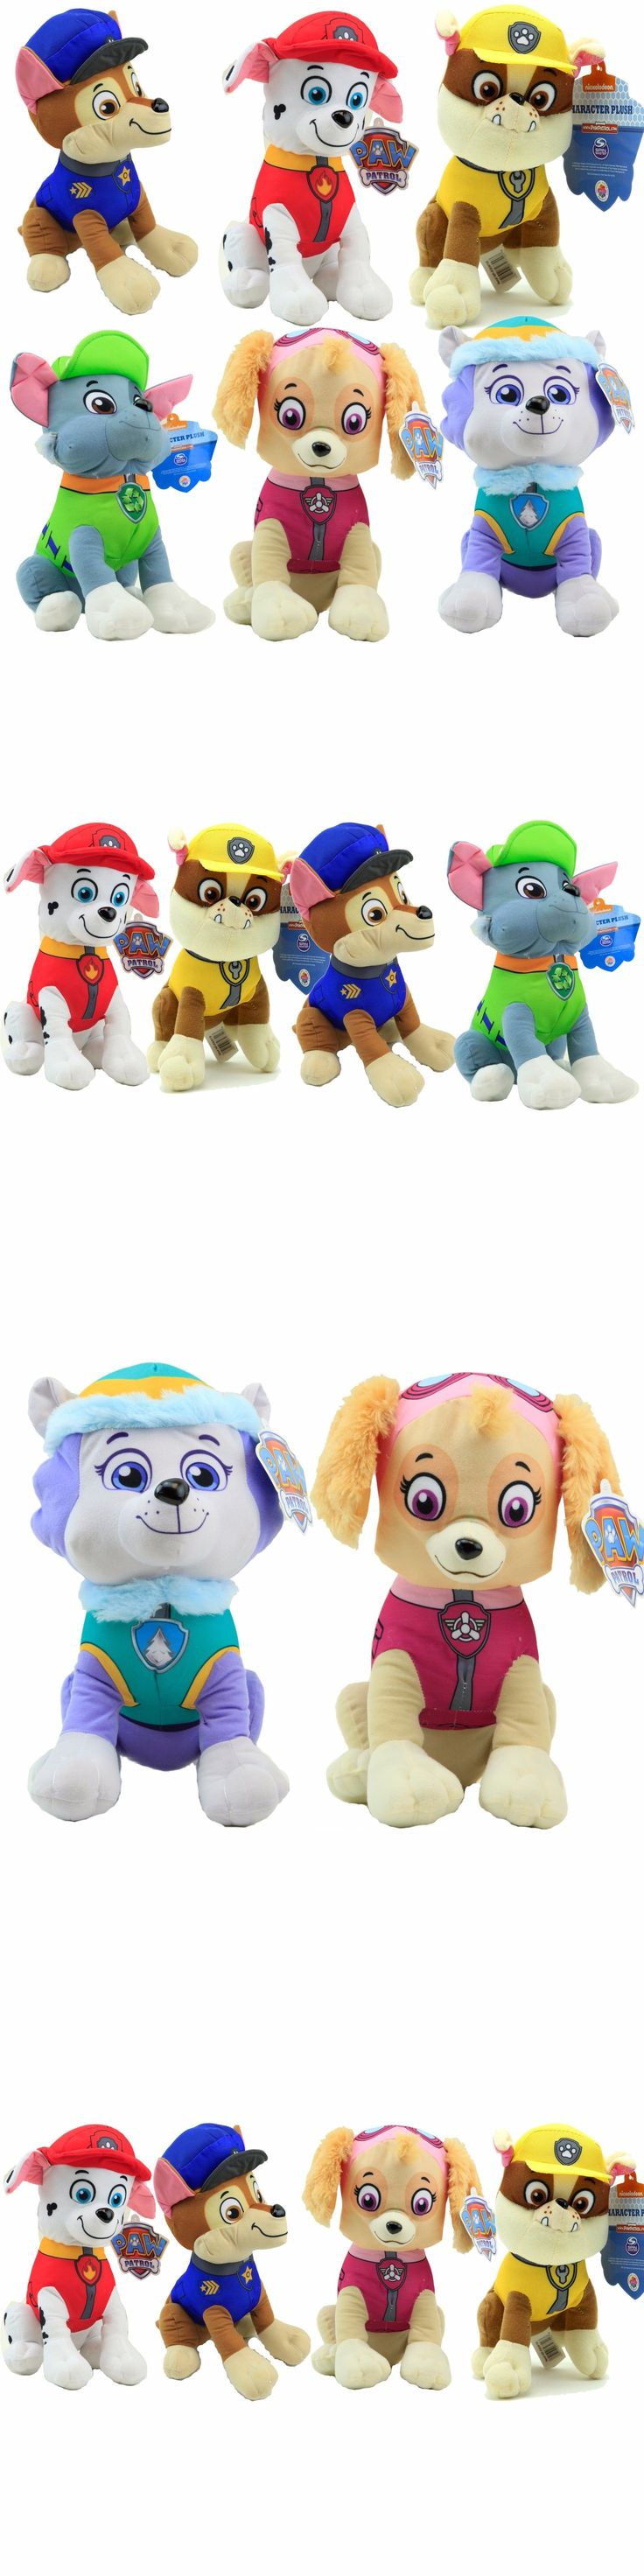 Plush Baby Toys 131084: 11 Paw Patrol Character Rubble Marshall Skye Chase Everest And Rocky Plush Toy -> BUY IT NOW ONLY: $57.99 on eBay!